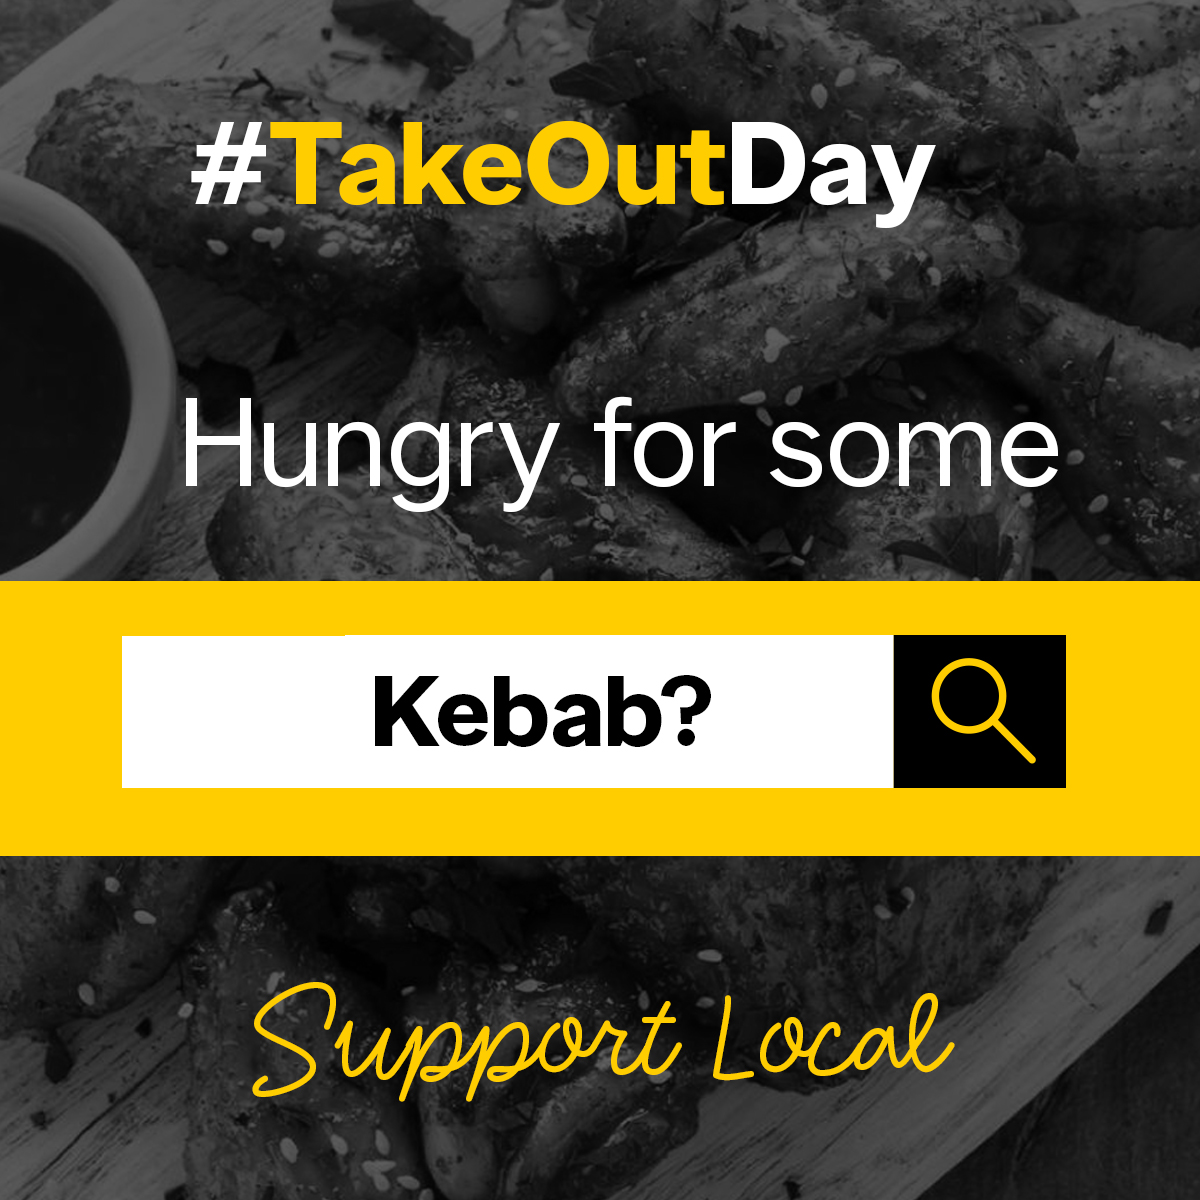 Nothing beats the comfort and flavour of a delicious Kebab! Support your local restaurants specializing in authentic Middle Eastern cuisine tonight with #TakeOutDay!  ------> https://t.co/L1zMSZiKLa https://t.co/01ilXVosr8